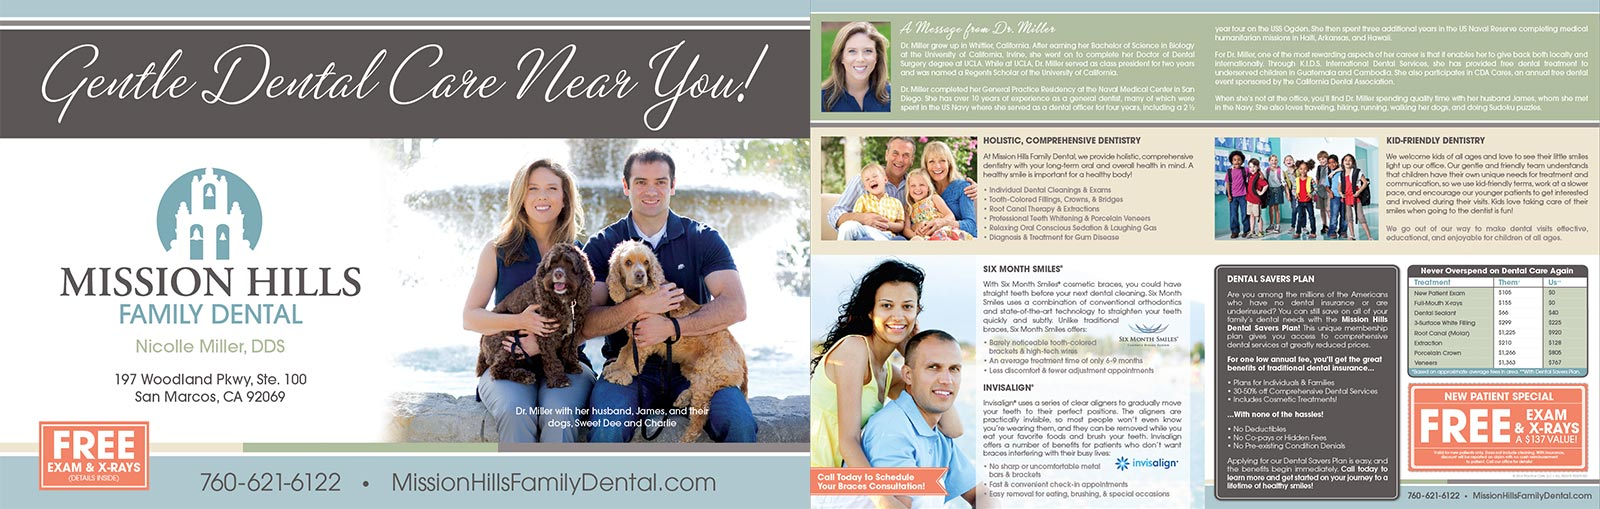 Mission Hills Family Dental Mailer by Practice Cafe